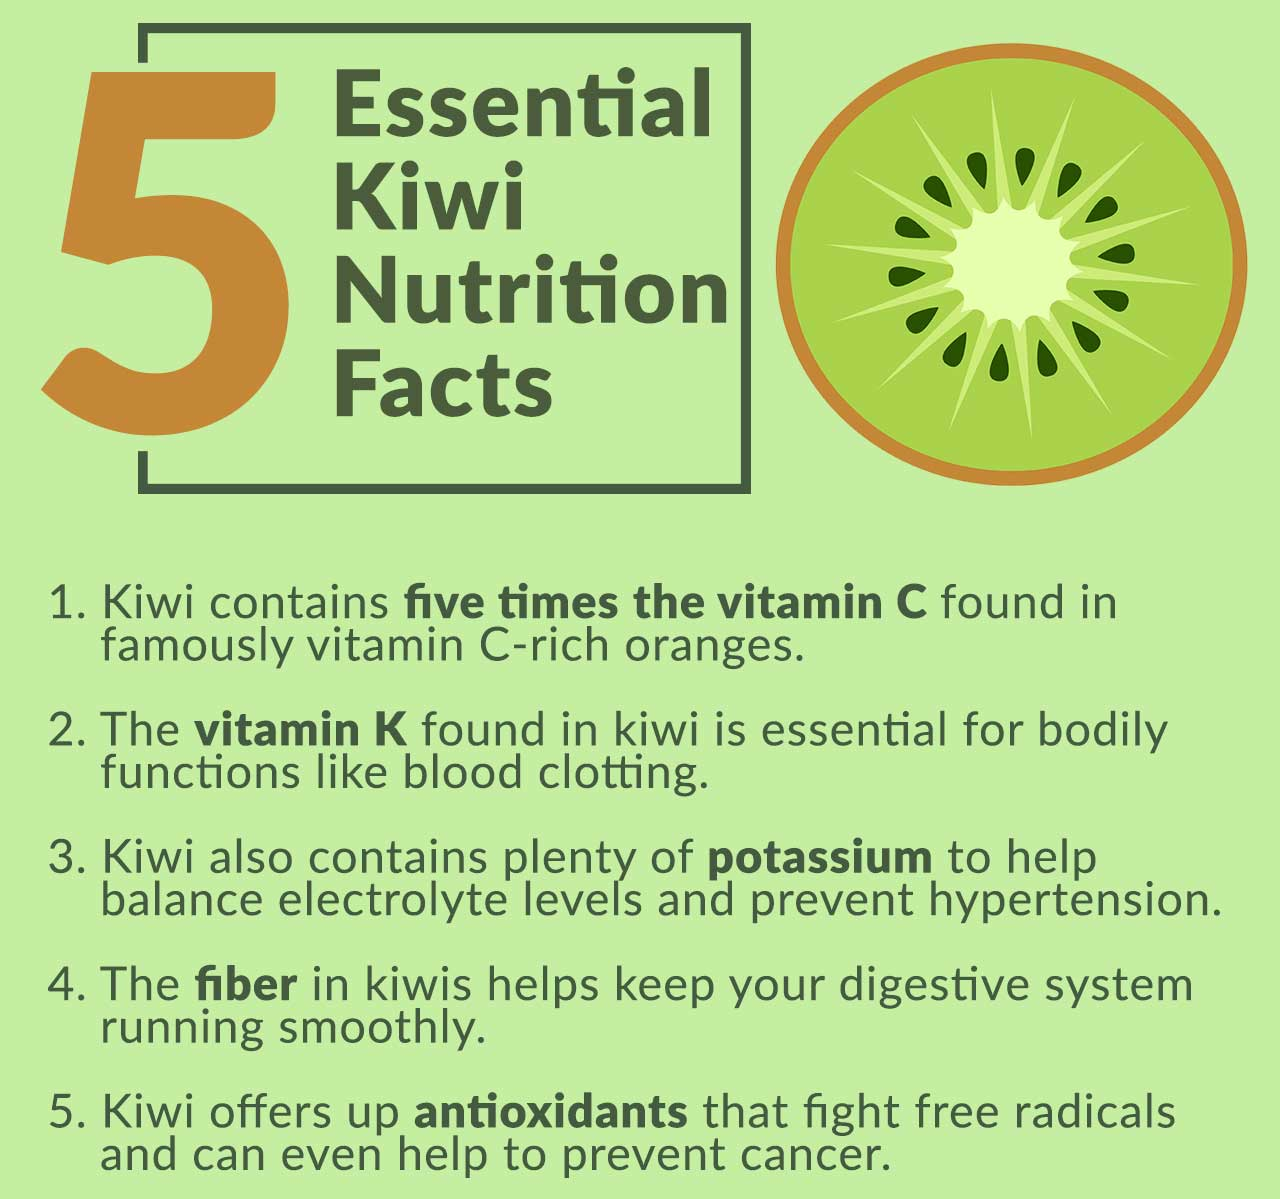 5 Kiwi Fruit Nutrition Facts to Know